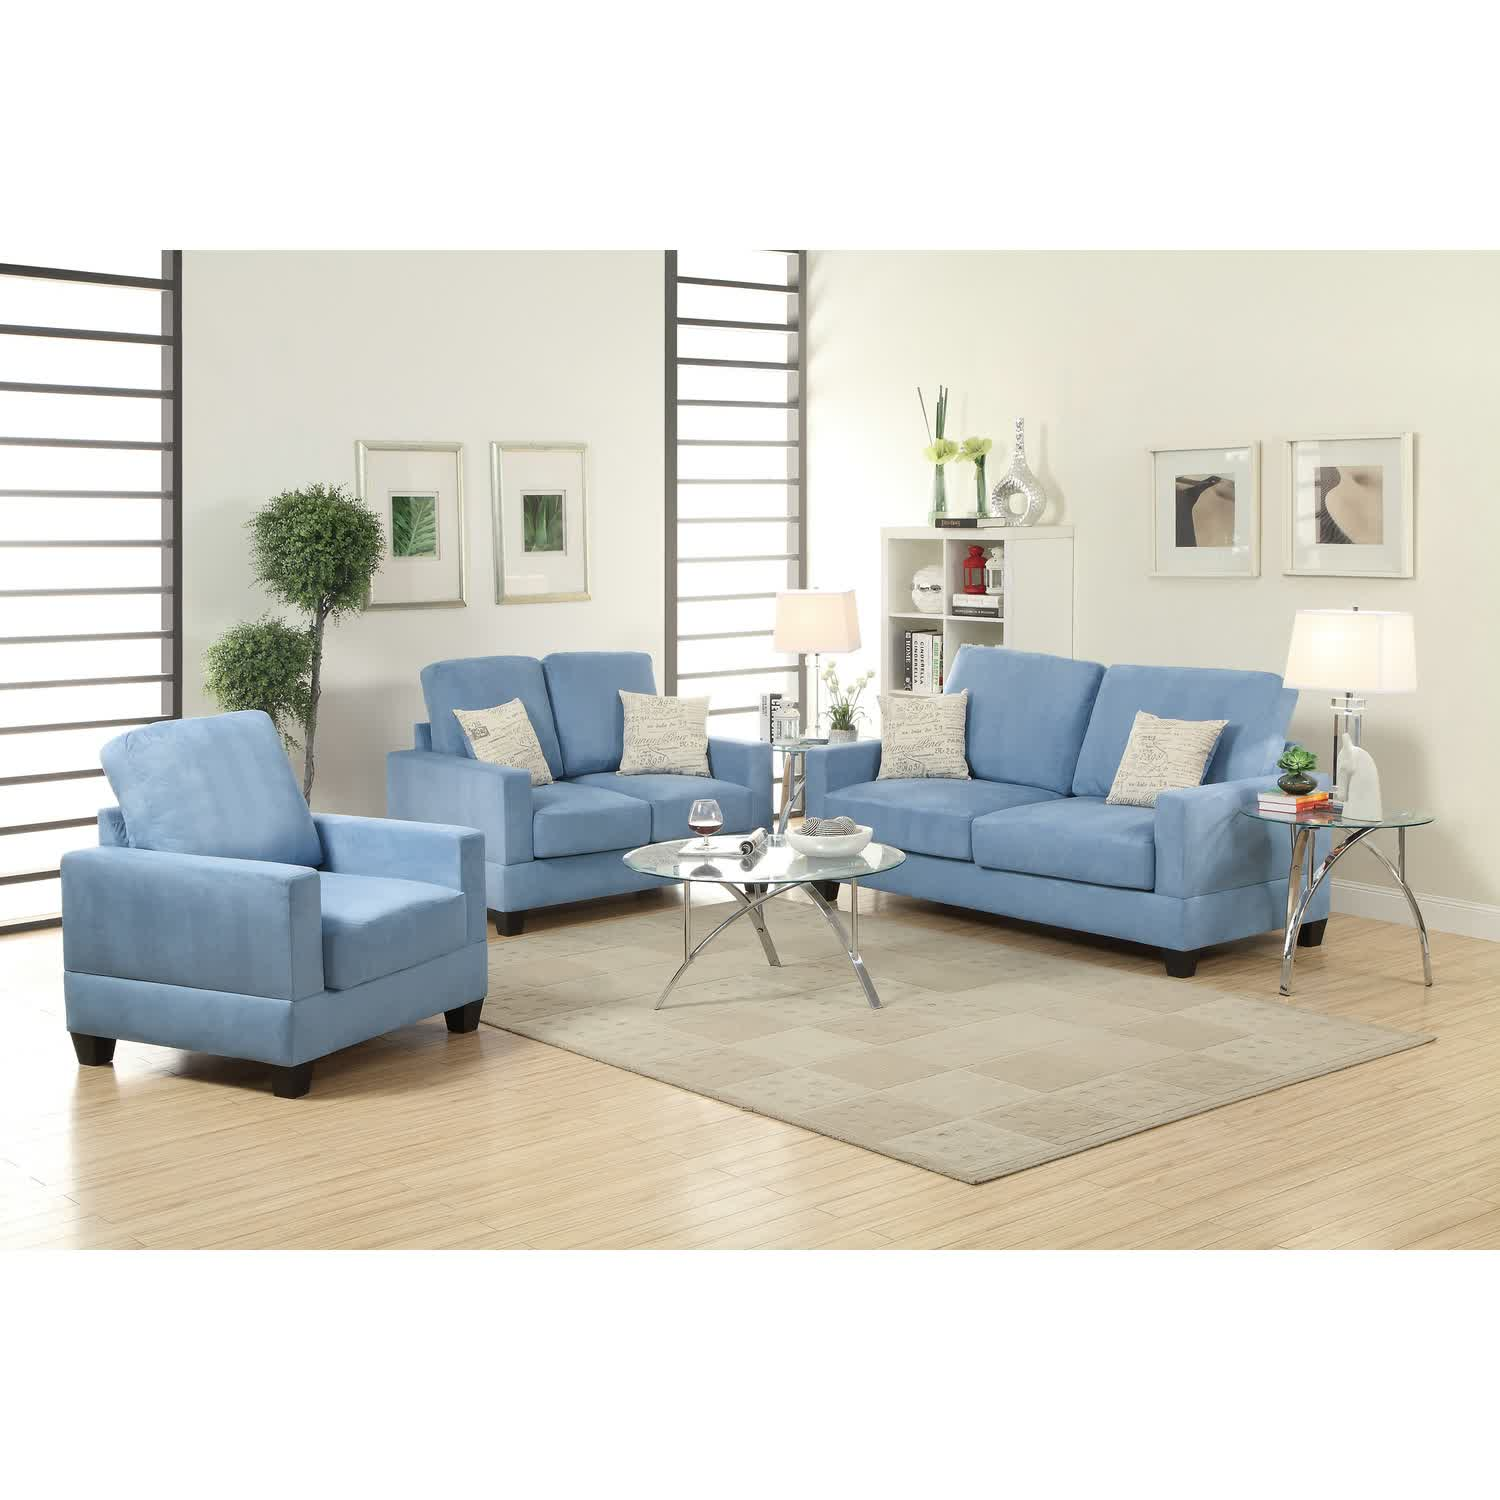 Apartment size sectional selections for your small space living room homesfeed - Apartment size living room furniture ...